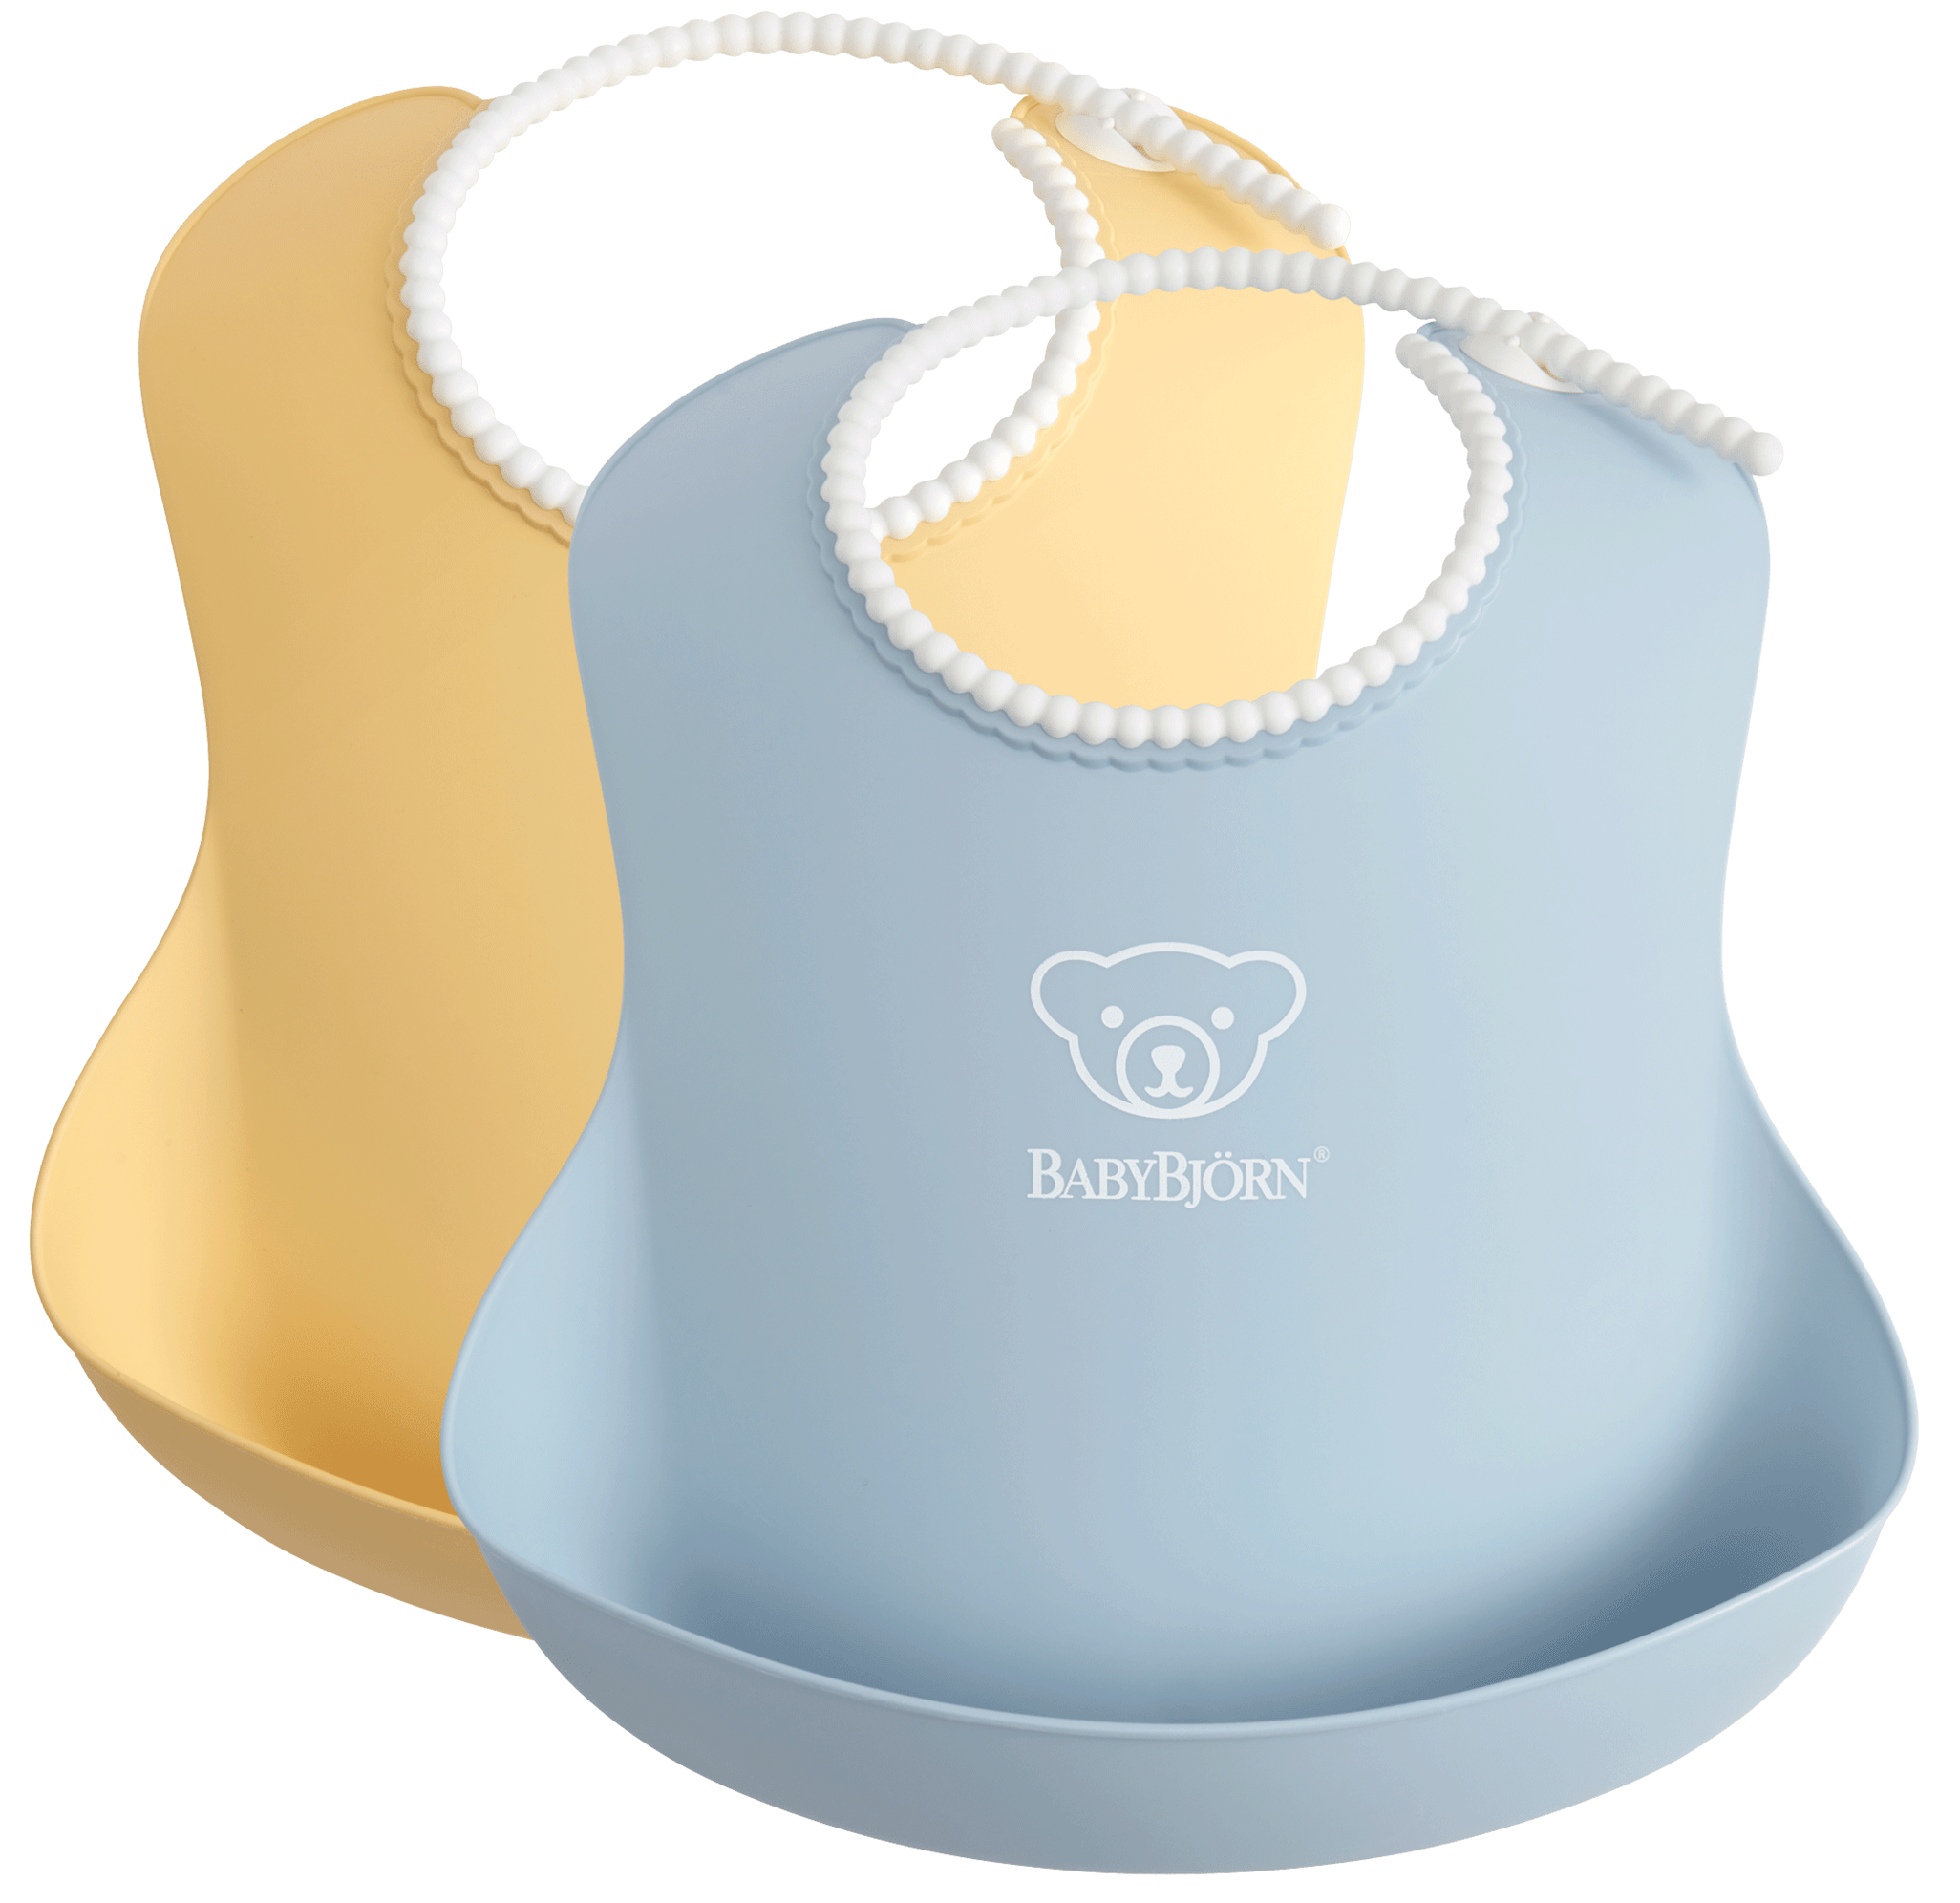 baby-bib-colour-powder-blue-yellow-BABYBJÖRN